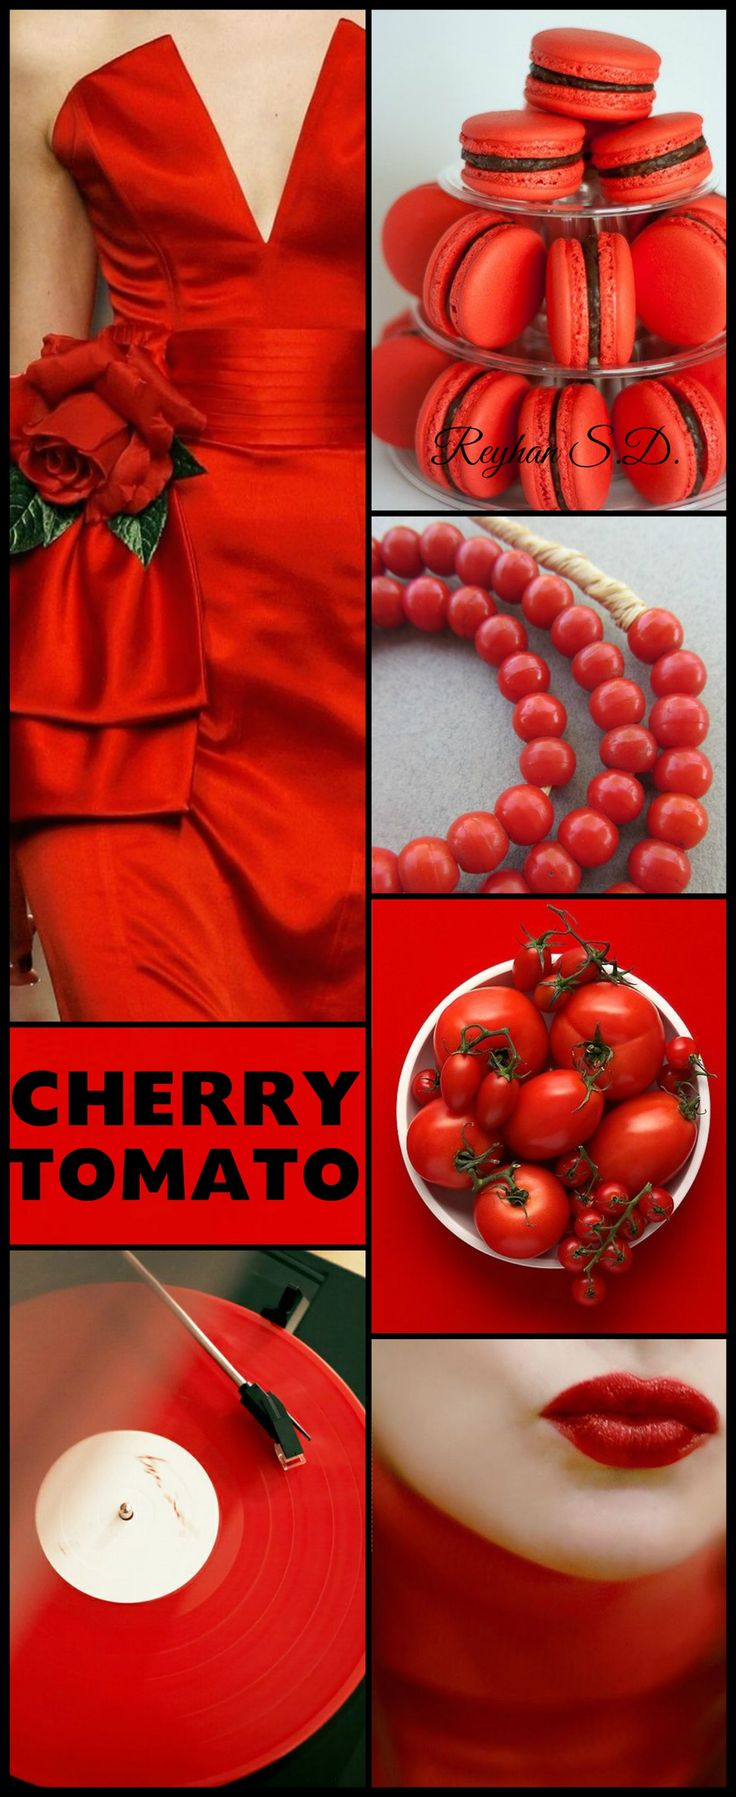 '' Cherry Tomato '' by Reyhan S.D.